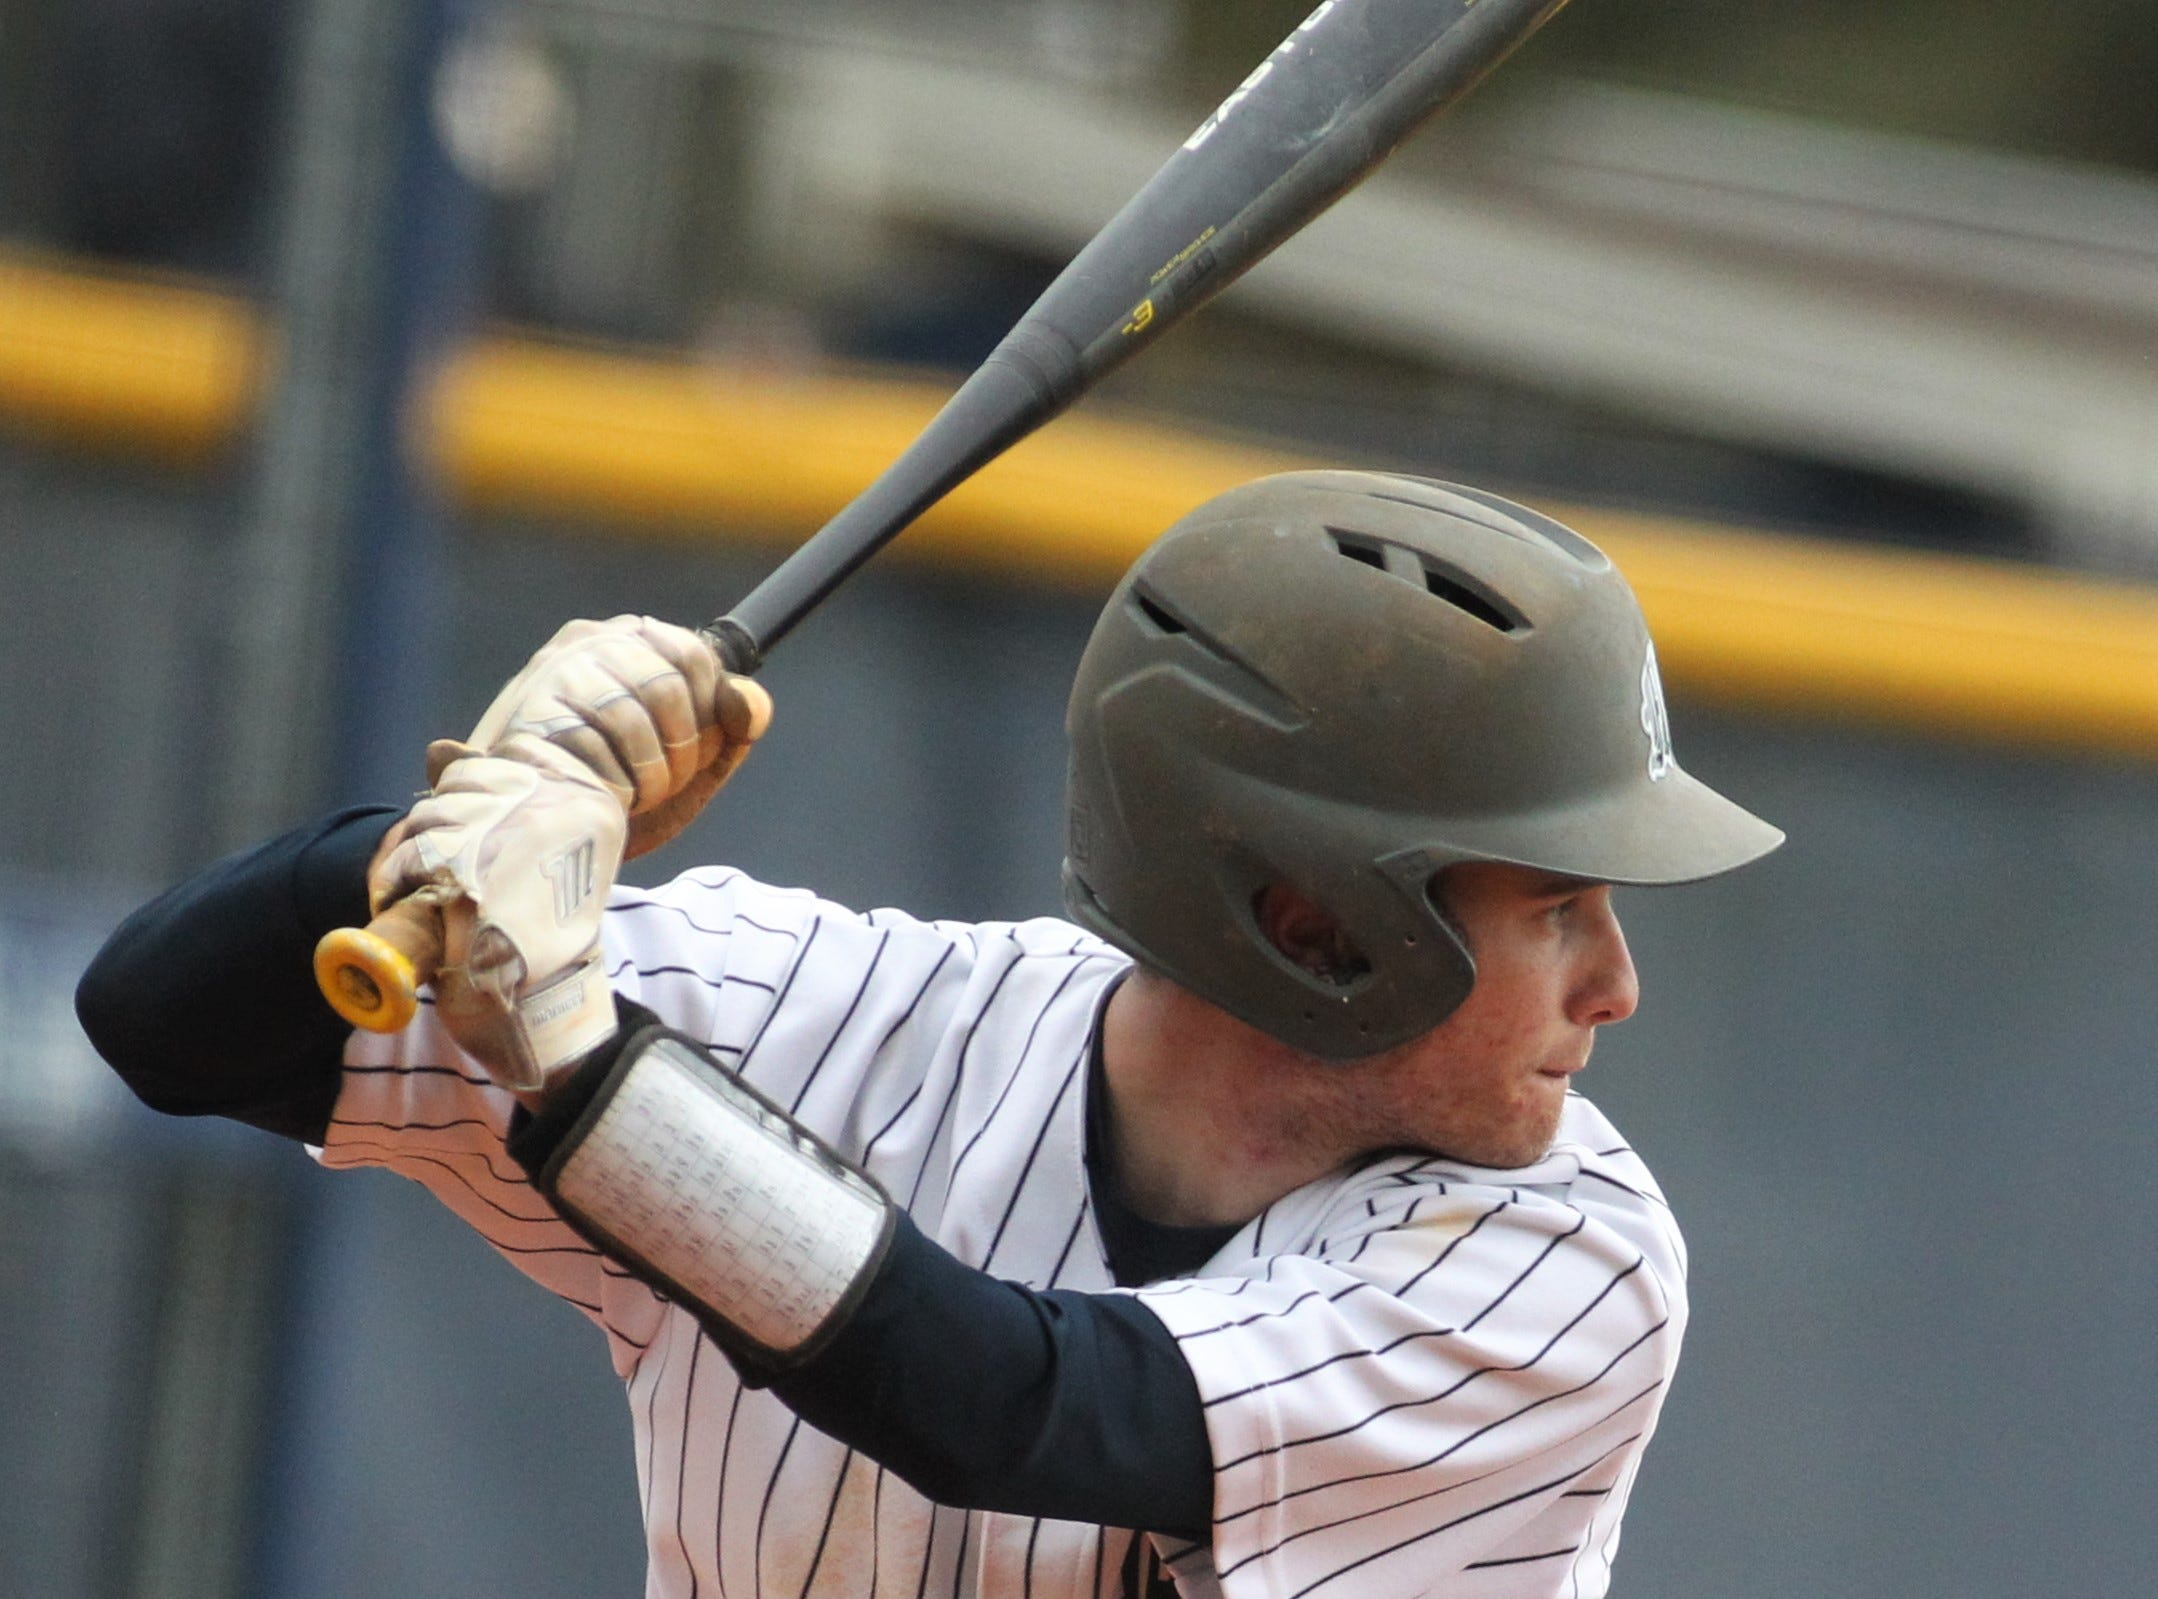 Maclay's Grant Harrison bats as Liberty County's baseball team went on the road to beat Maclay 8-2 on Saturday, March 16, 2019. The Bulldogs played their first game following their head coach Corey Crum's tragic death six days ago.